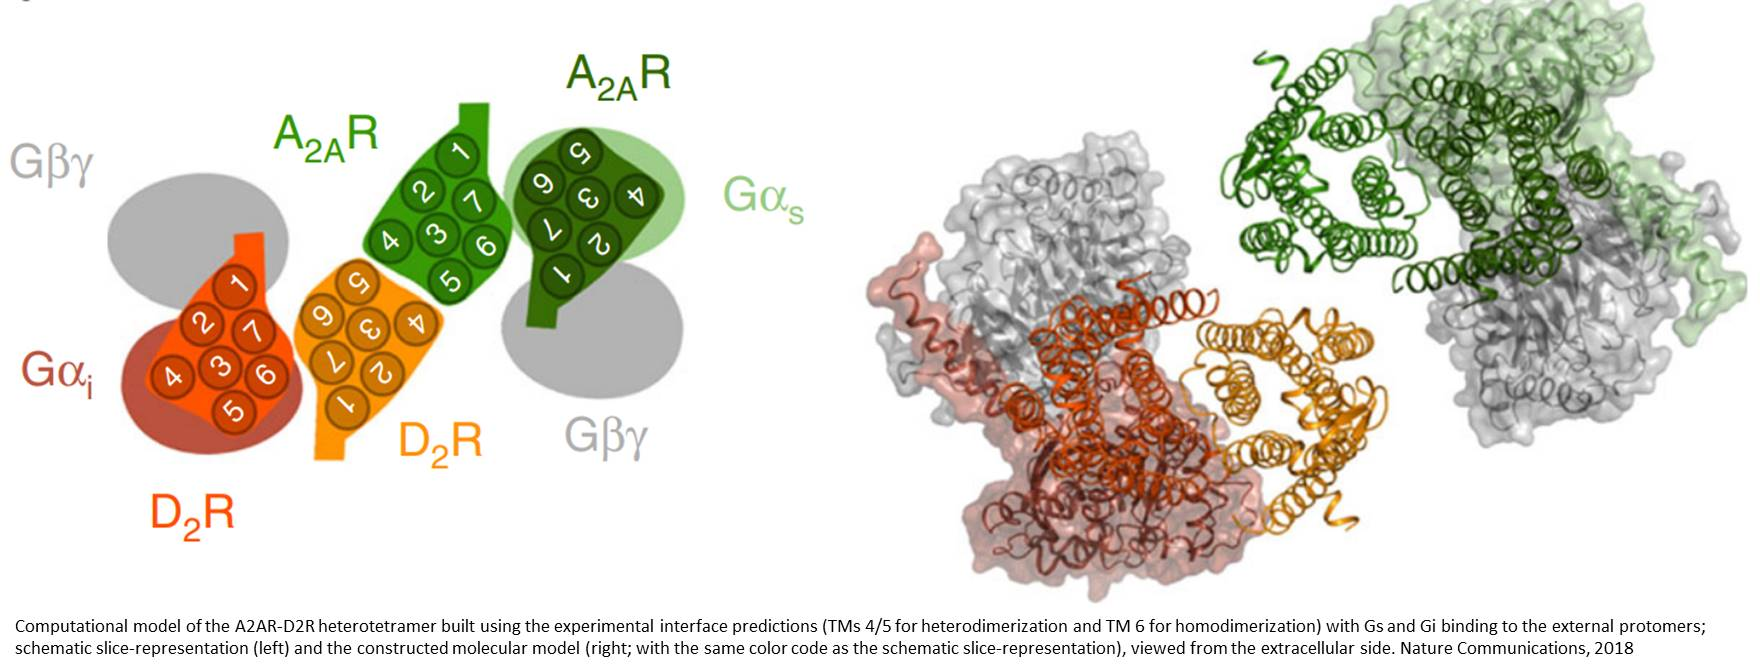 Pre-assembled GPCR macromolecular complex detected in cells